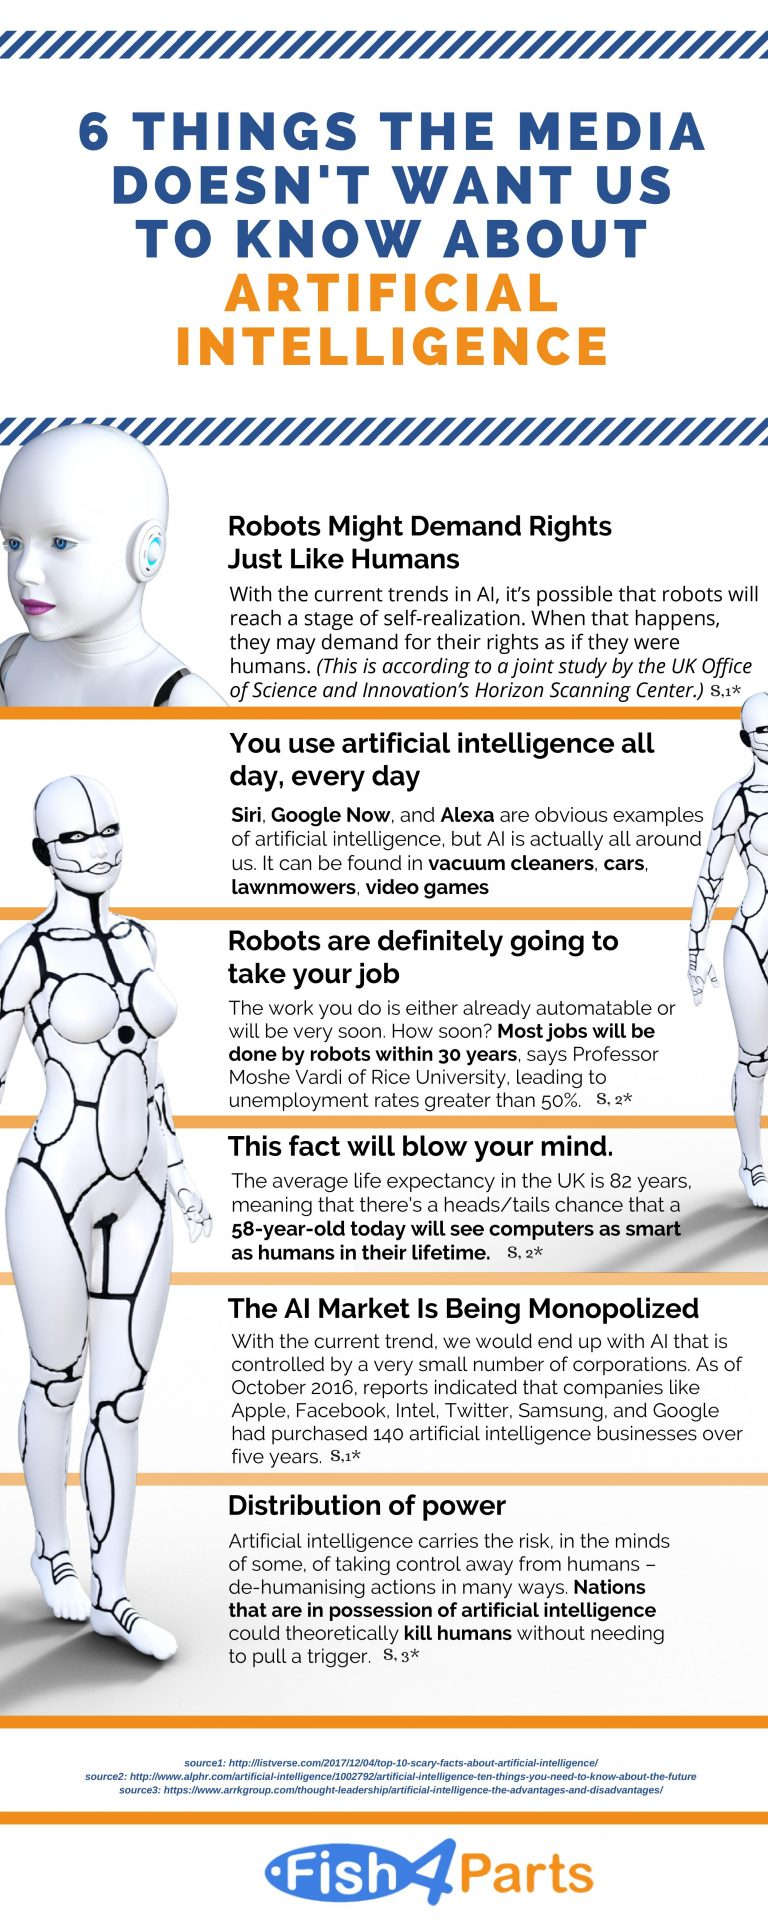 Things the Media Doesn't Want Us to Know About Artificial Intelligence